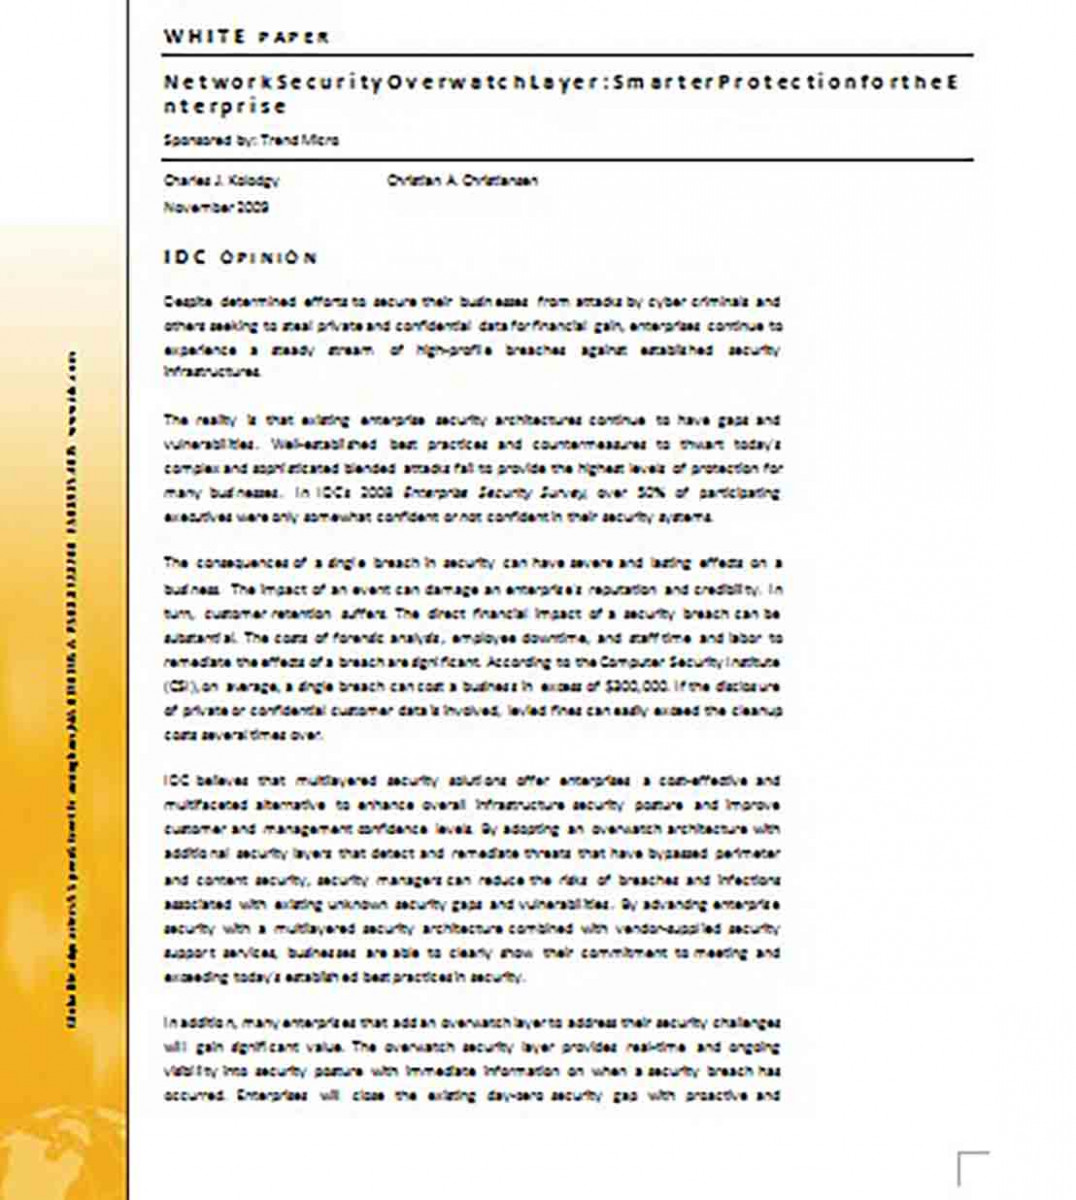 White Paper for Network Security